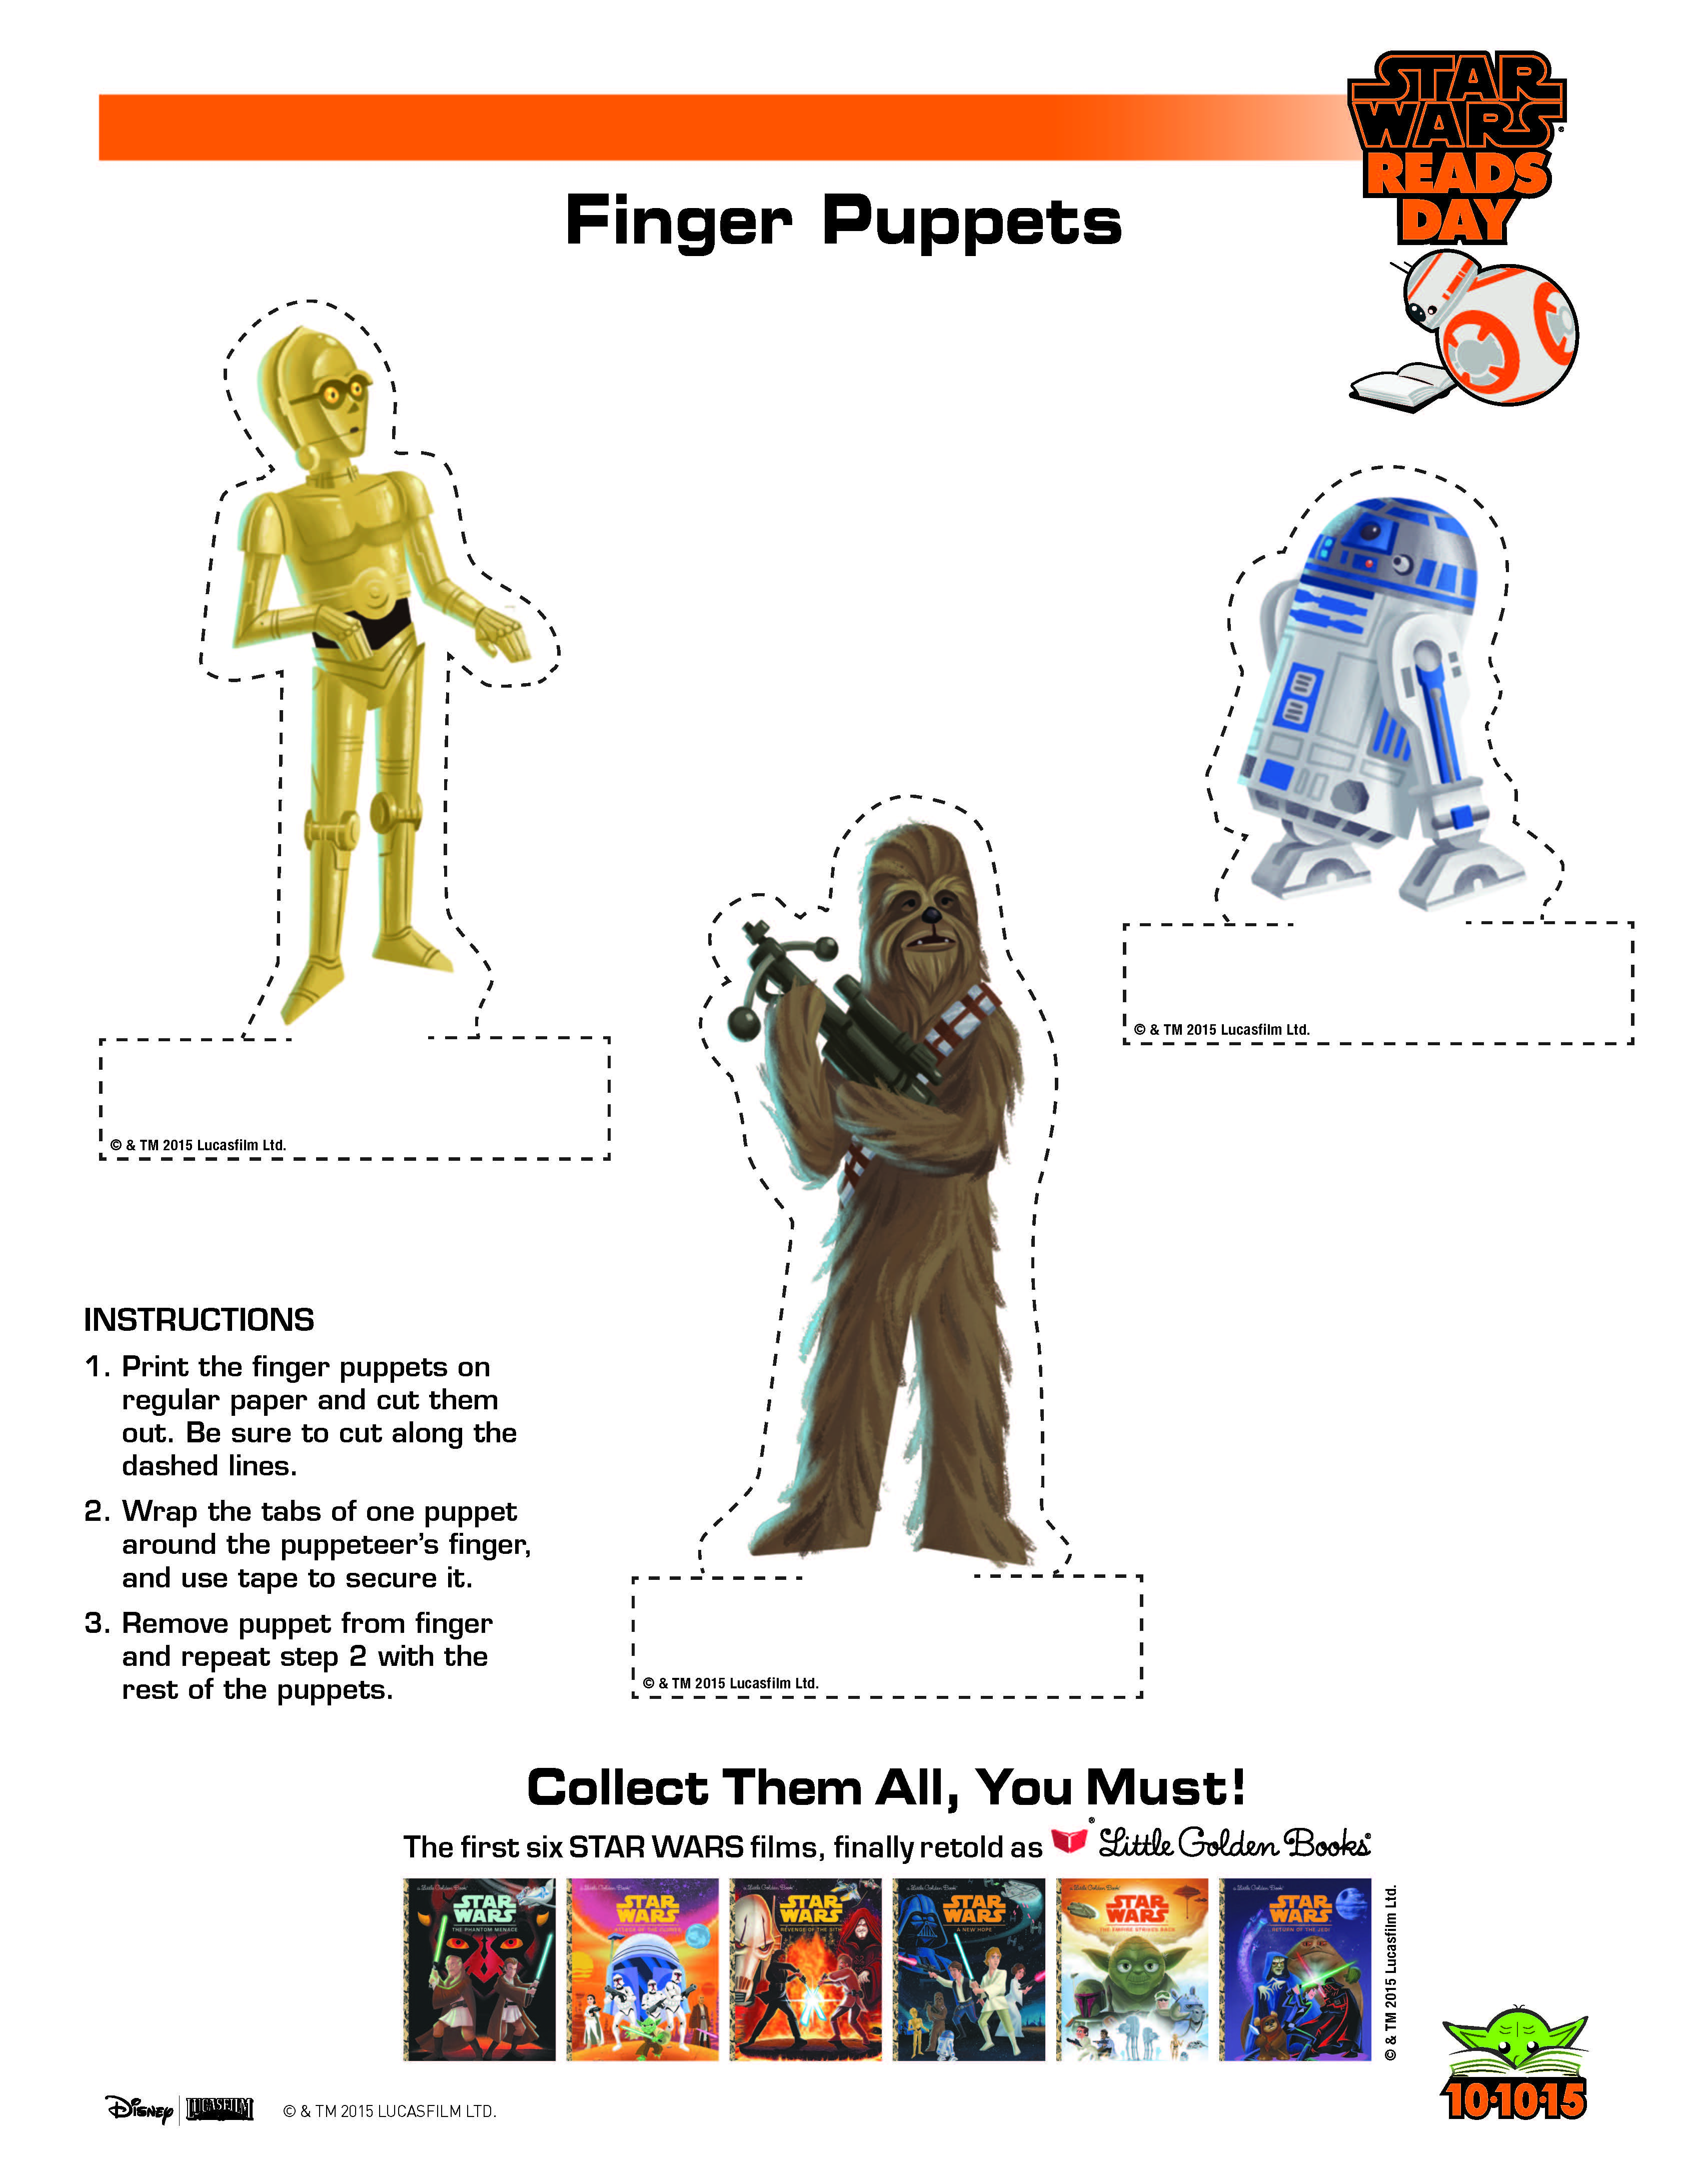 SW-finger-puppets